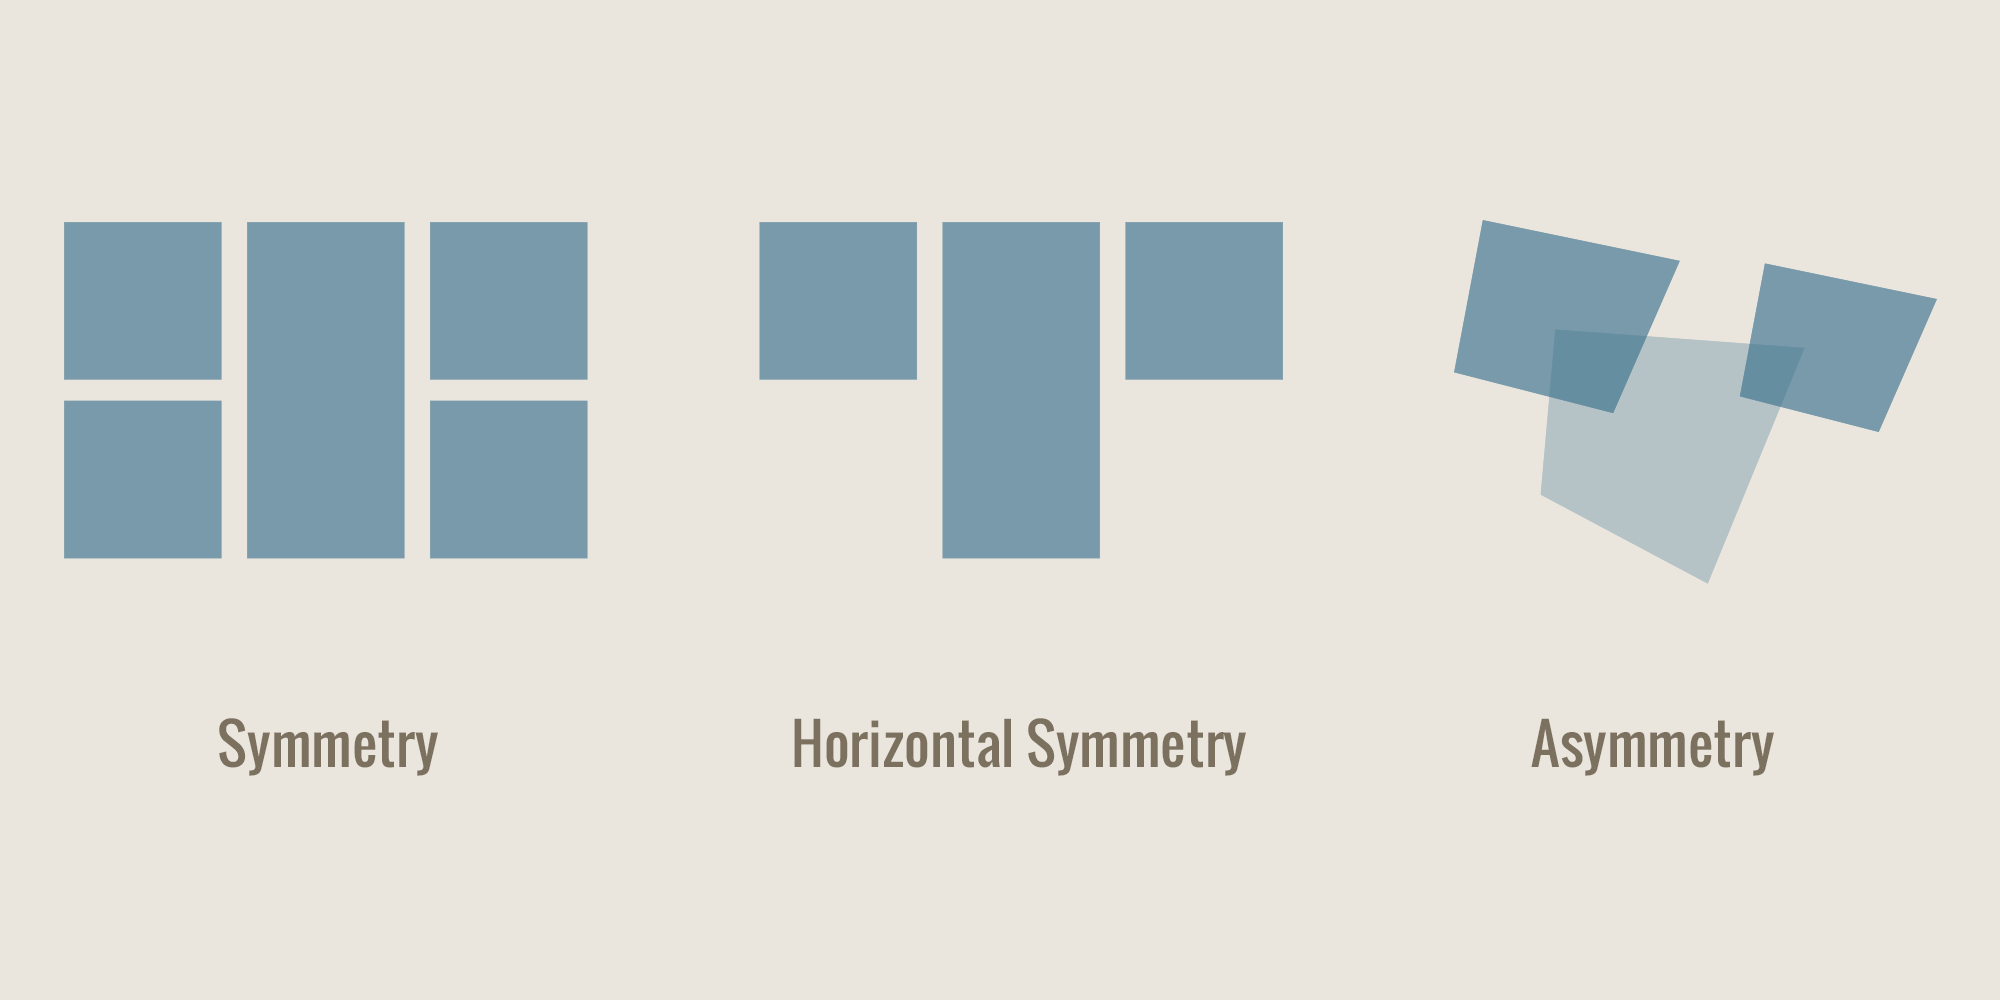 Examples of Symmetry and Asymmetry